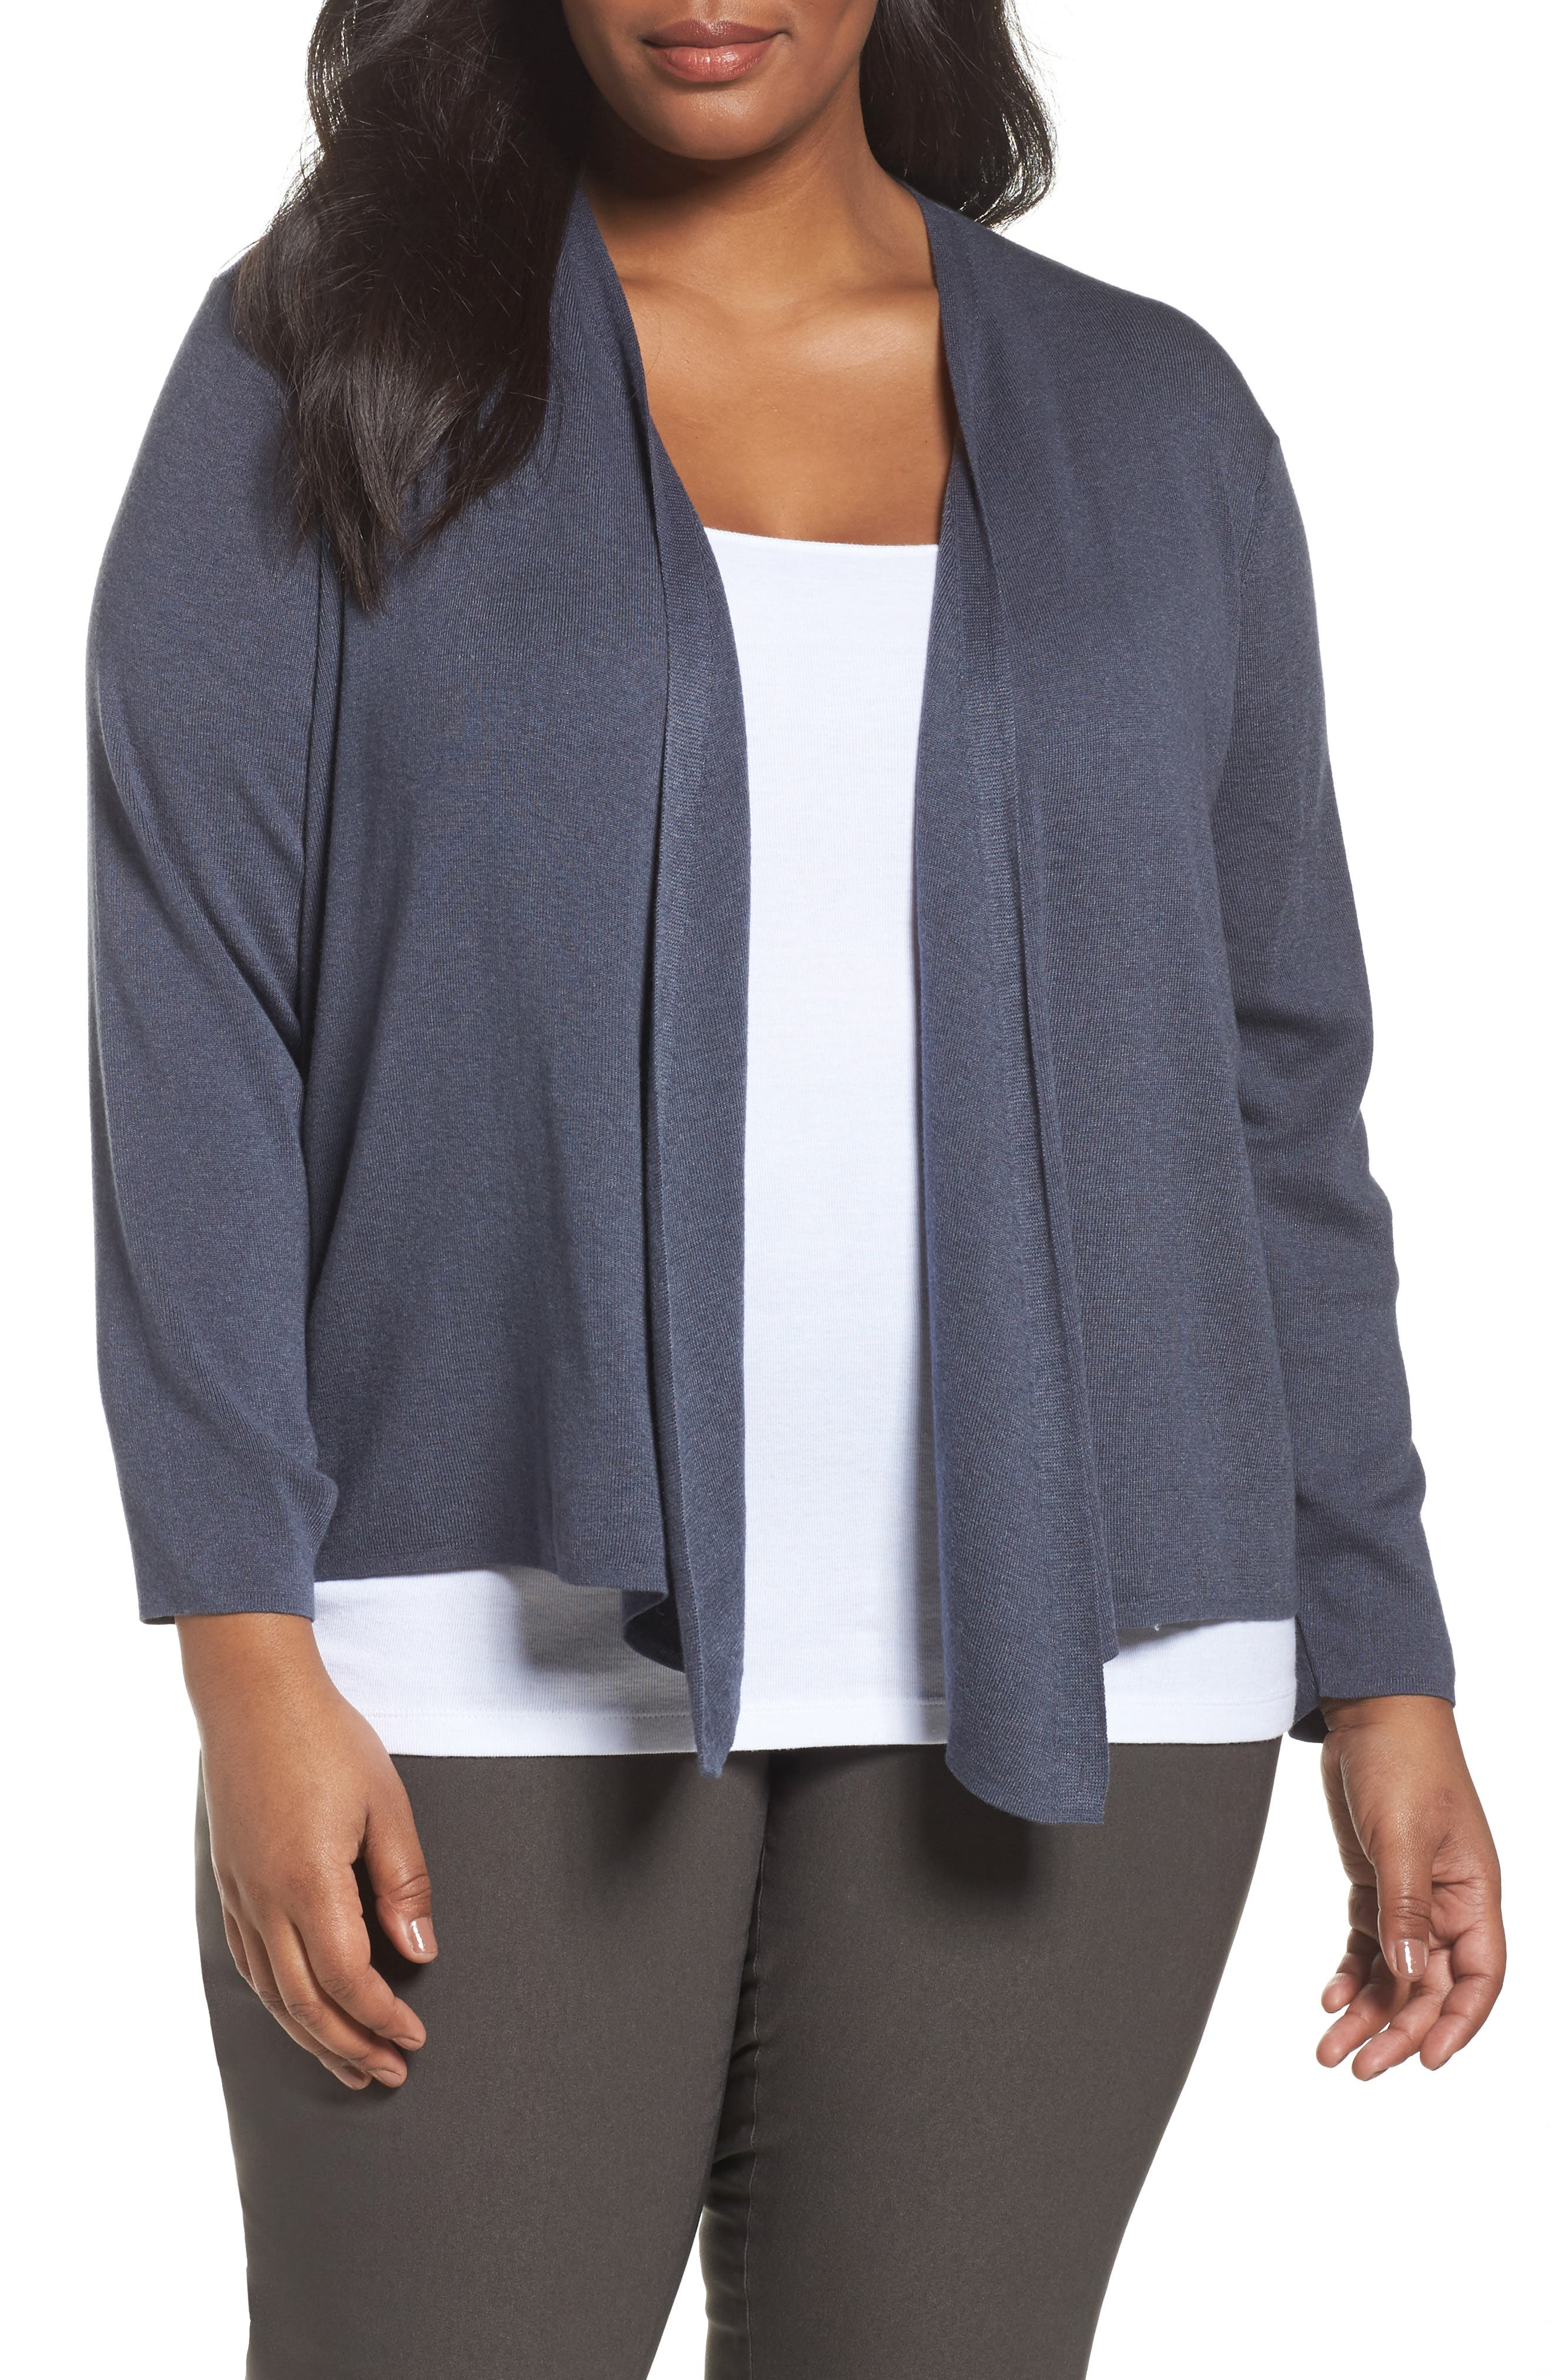 Alternate Image 1 Selected - NIC+ZOE 4-Way Convertible Cardigan (Plus Size)